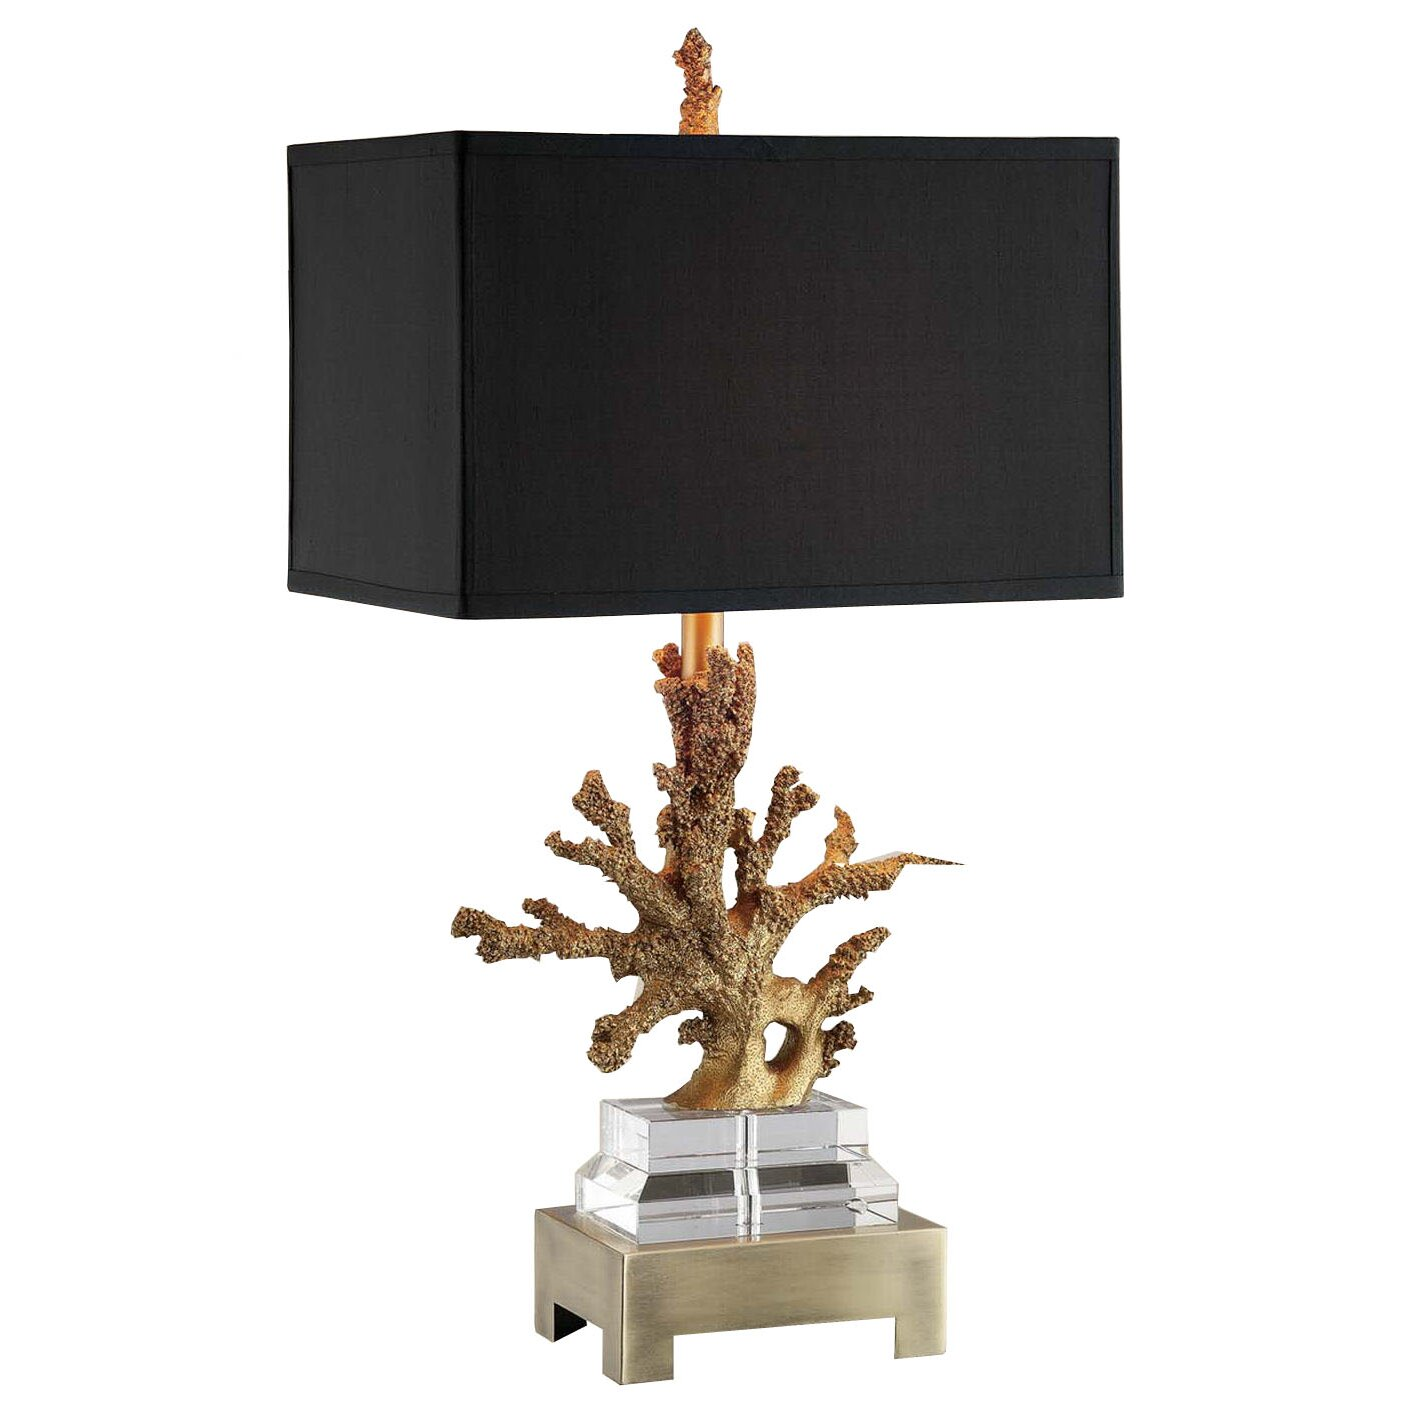 lighting lamps gold table lamps amita trading sku xnc1041. Black Bedroom Furniture Sets. Home Design Ideas